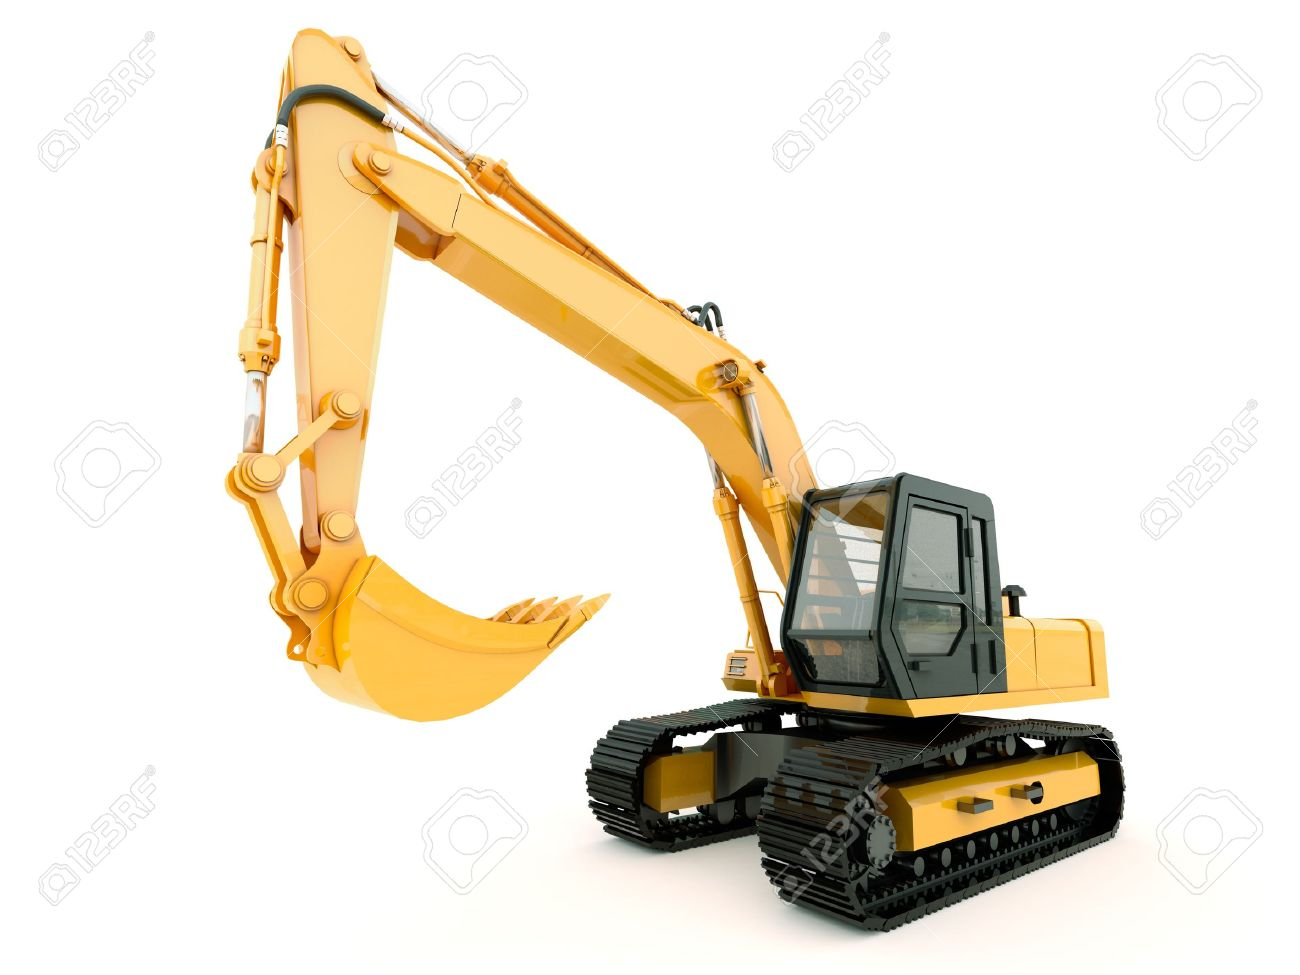 Construction heavy machine: excavator isolated on white background with light shadow - 21230609